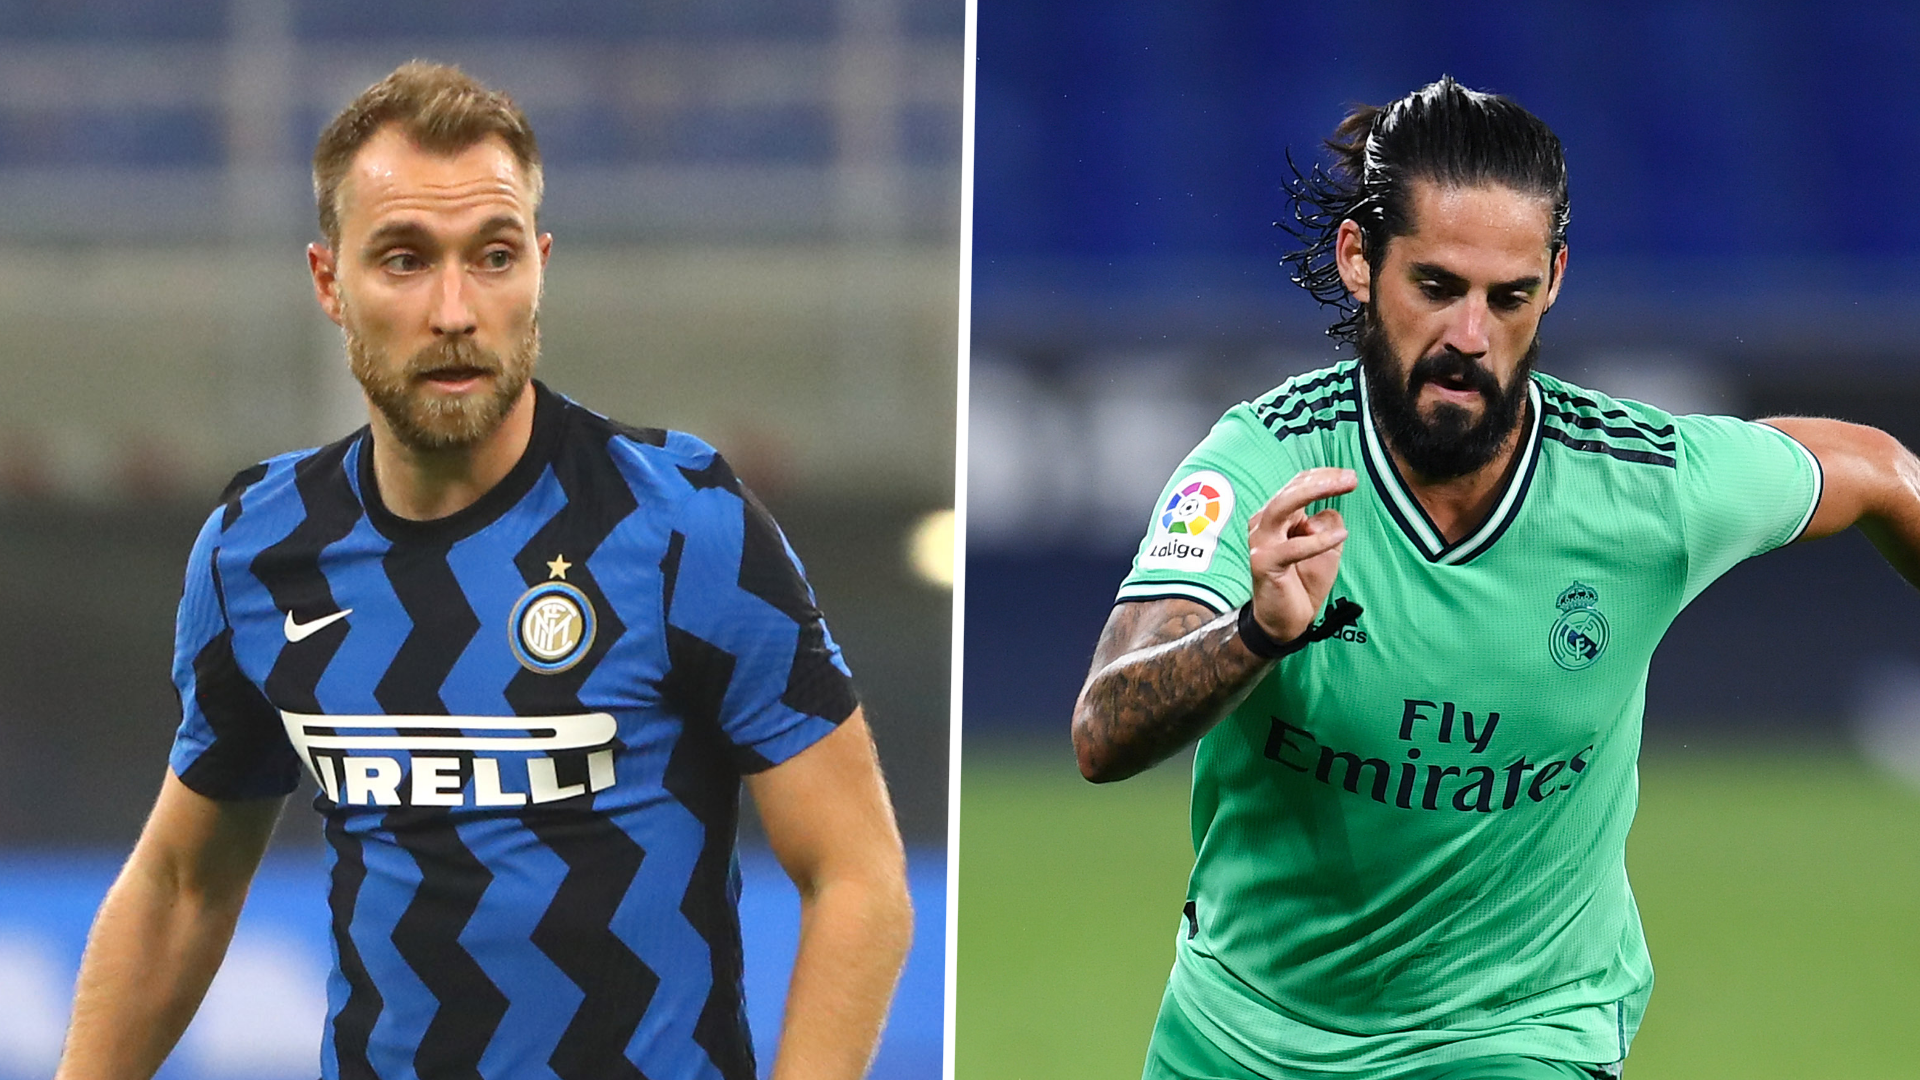 Transfer news and rumours LIVE: Real and Inter hold talks over Eriksen-Isco swap deal